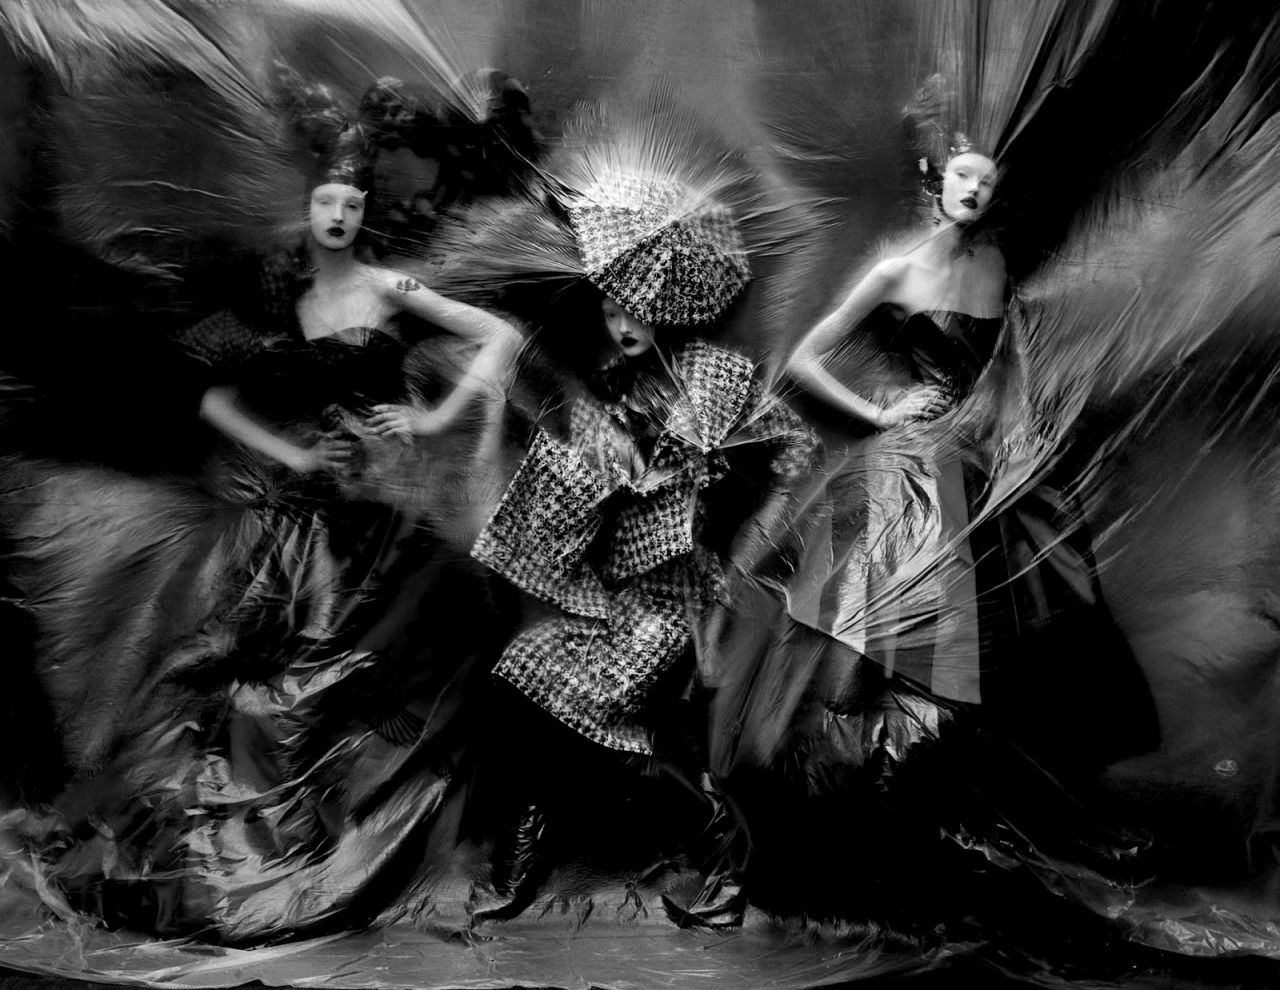 Tim Walker brings the magic of McQueen's artistry to life in 'Dark Angel' for Vogue UK, March 2015